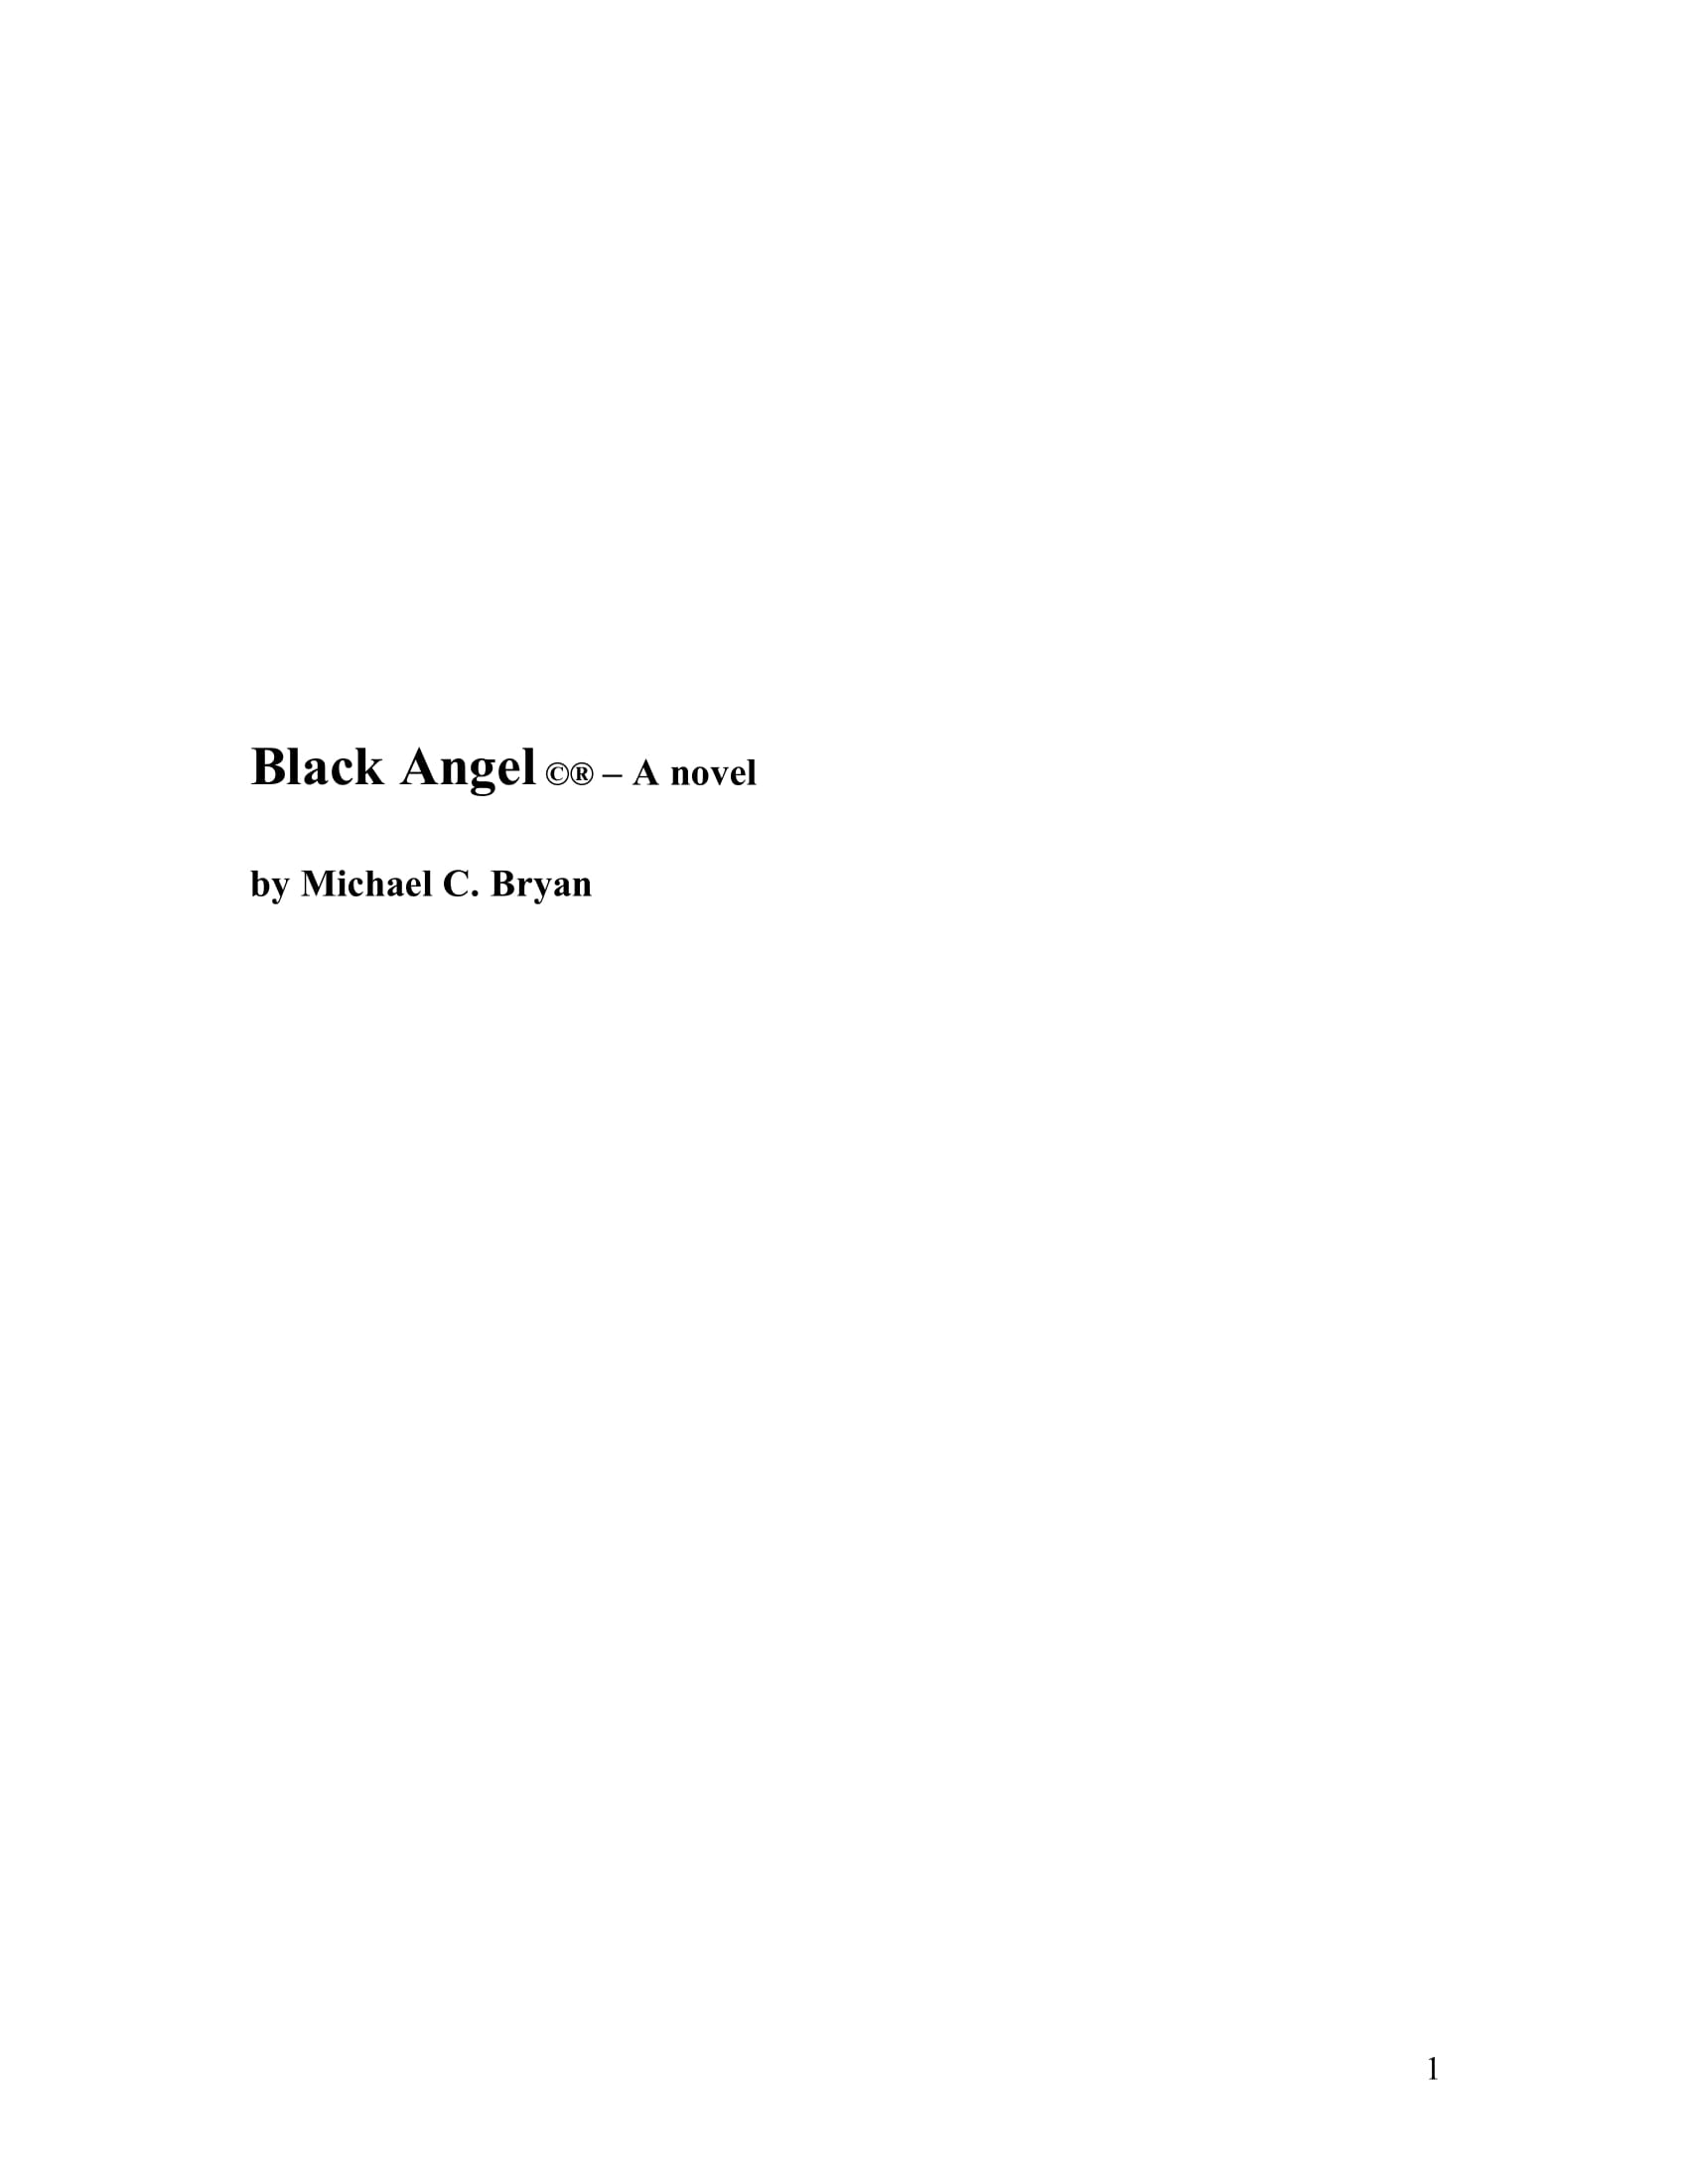 MichaelCBryan_BlackAngel_TheNovel_FirstChapter-01.jpg